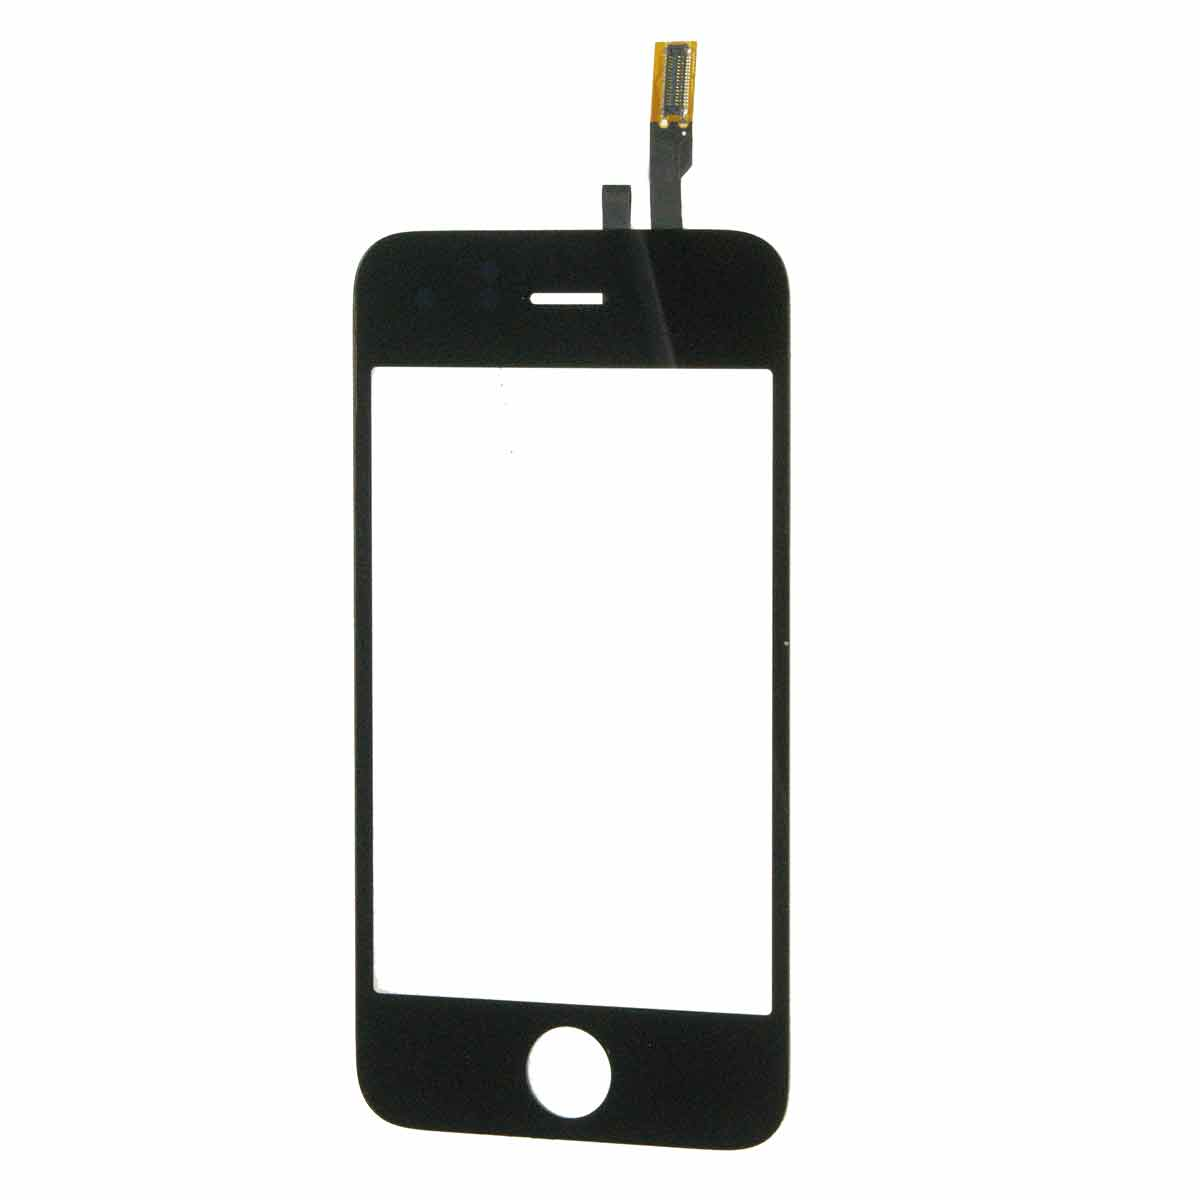 easyphix : New iPhone 3 3G iPhone3g Touch Screen Glass ...